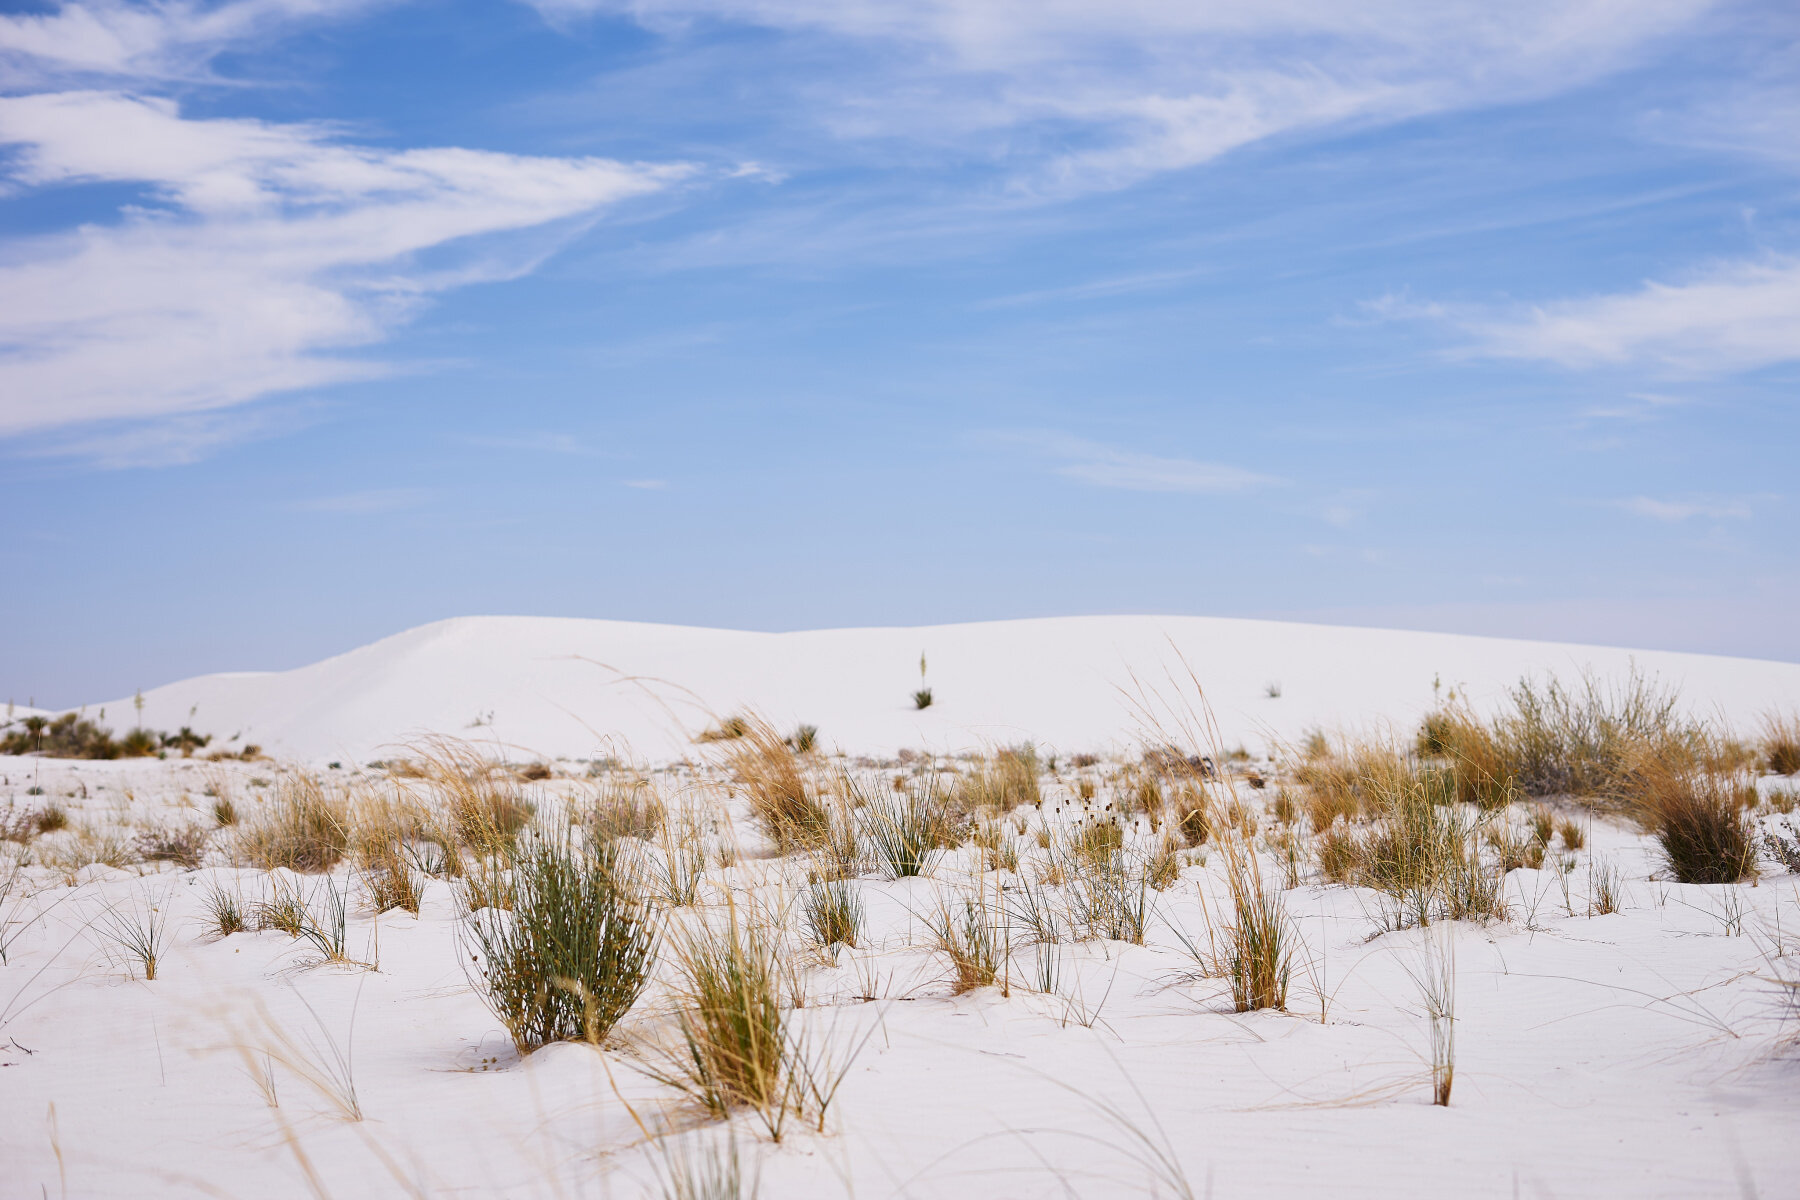 Your guide to White Sand Dunes National Monument by Amanda Outside! Everything you need to know about White Sand Dunes backcountry camping, hiking, and sledding. www.amandaoutside.com